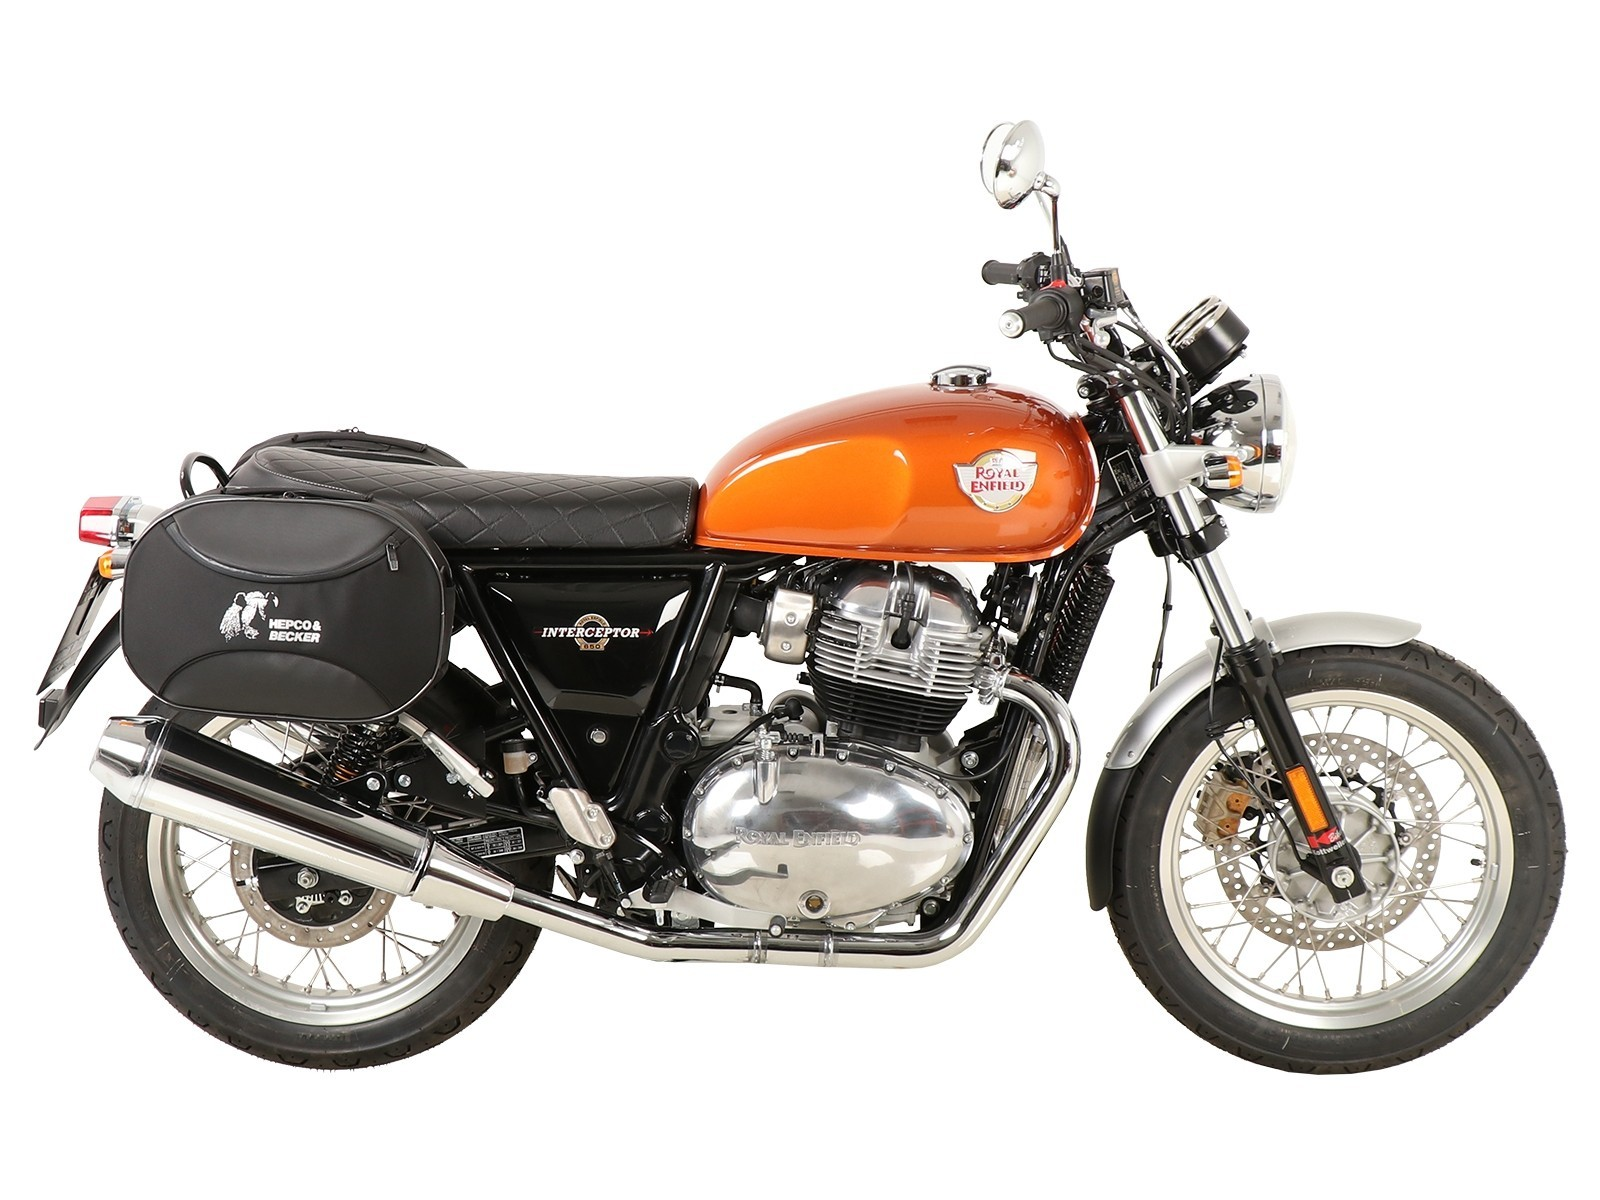 ROYAL ENFIELD INTERCEPTOR 650 HEPCO AND BECKER STREET SOFTBAGS WITH BLACK C-BOW FITTING KIT